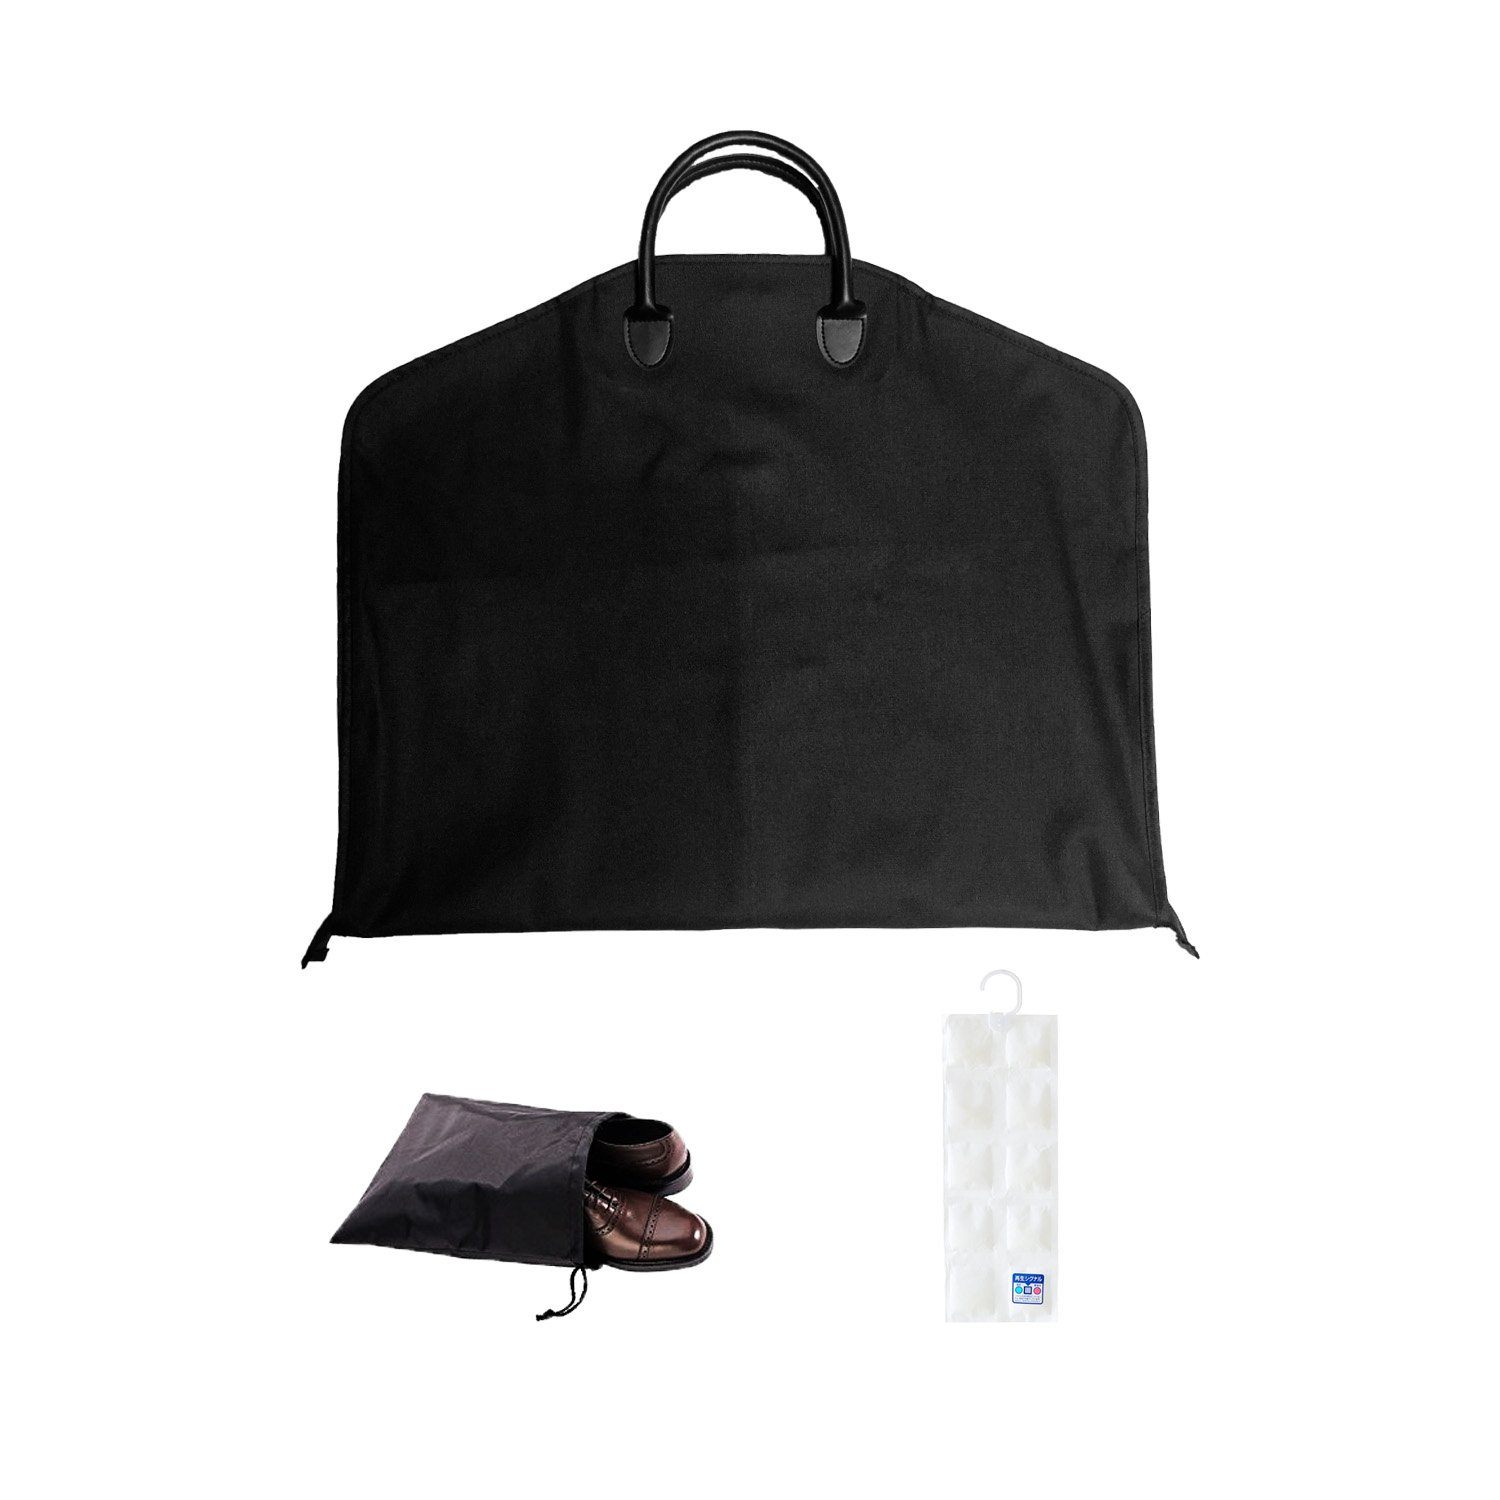 43 Garment Bags, Waterproof Oxford Suit Carrier Bag with leather handle for trip 43 Garment Bags TESHILA